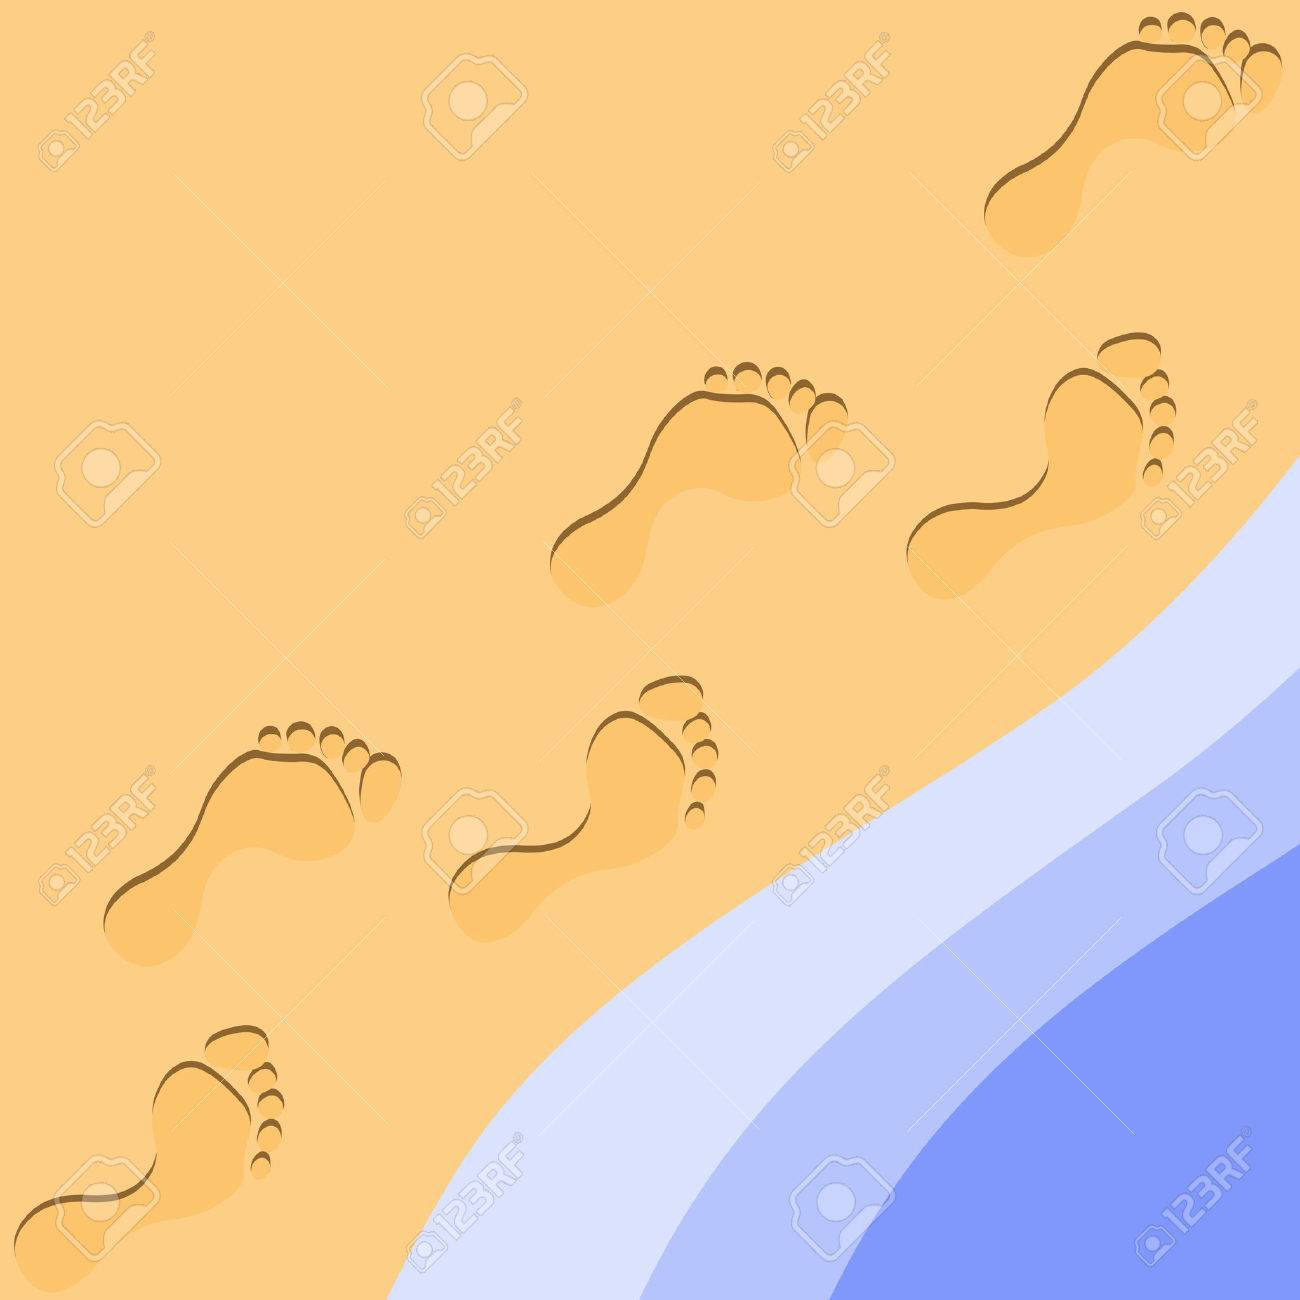 Foot Prints in the Sand Stock Vector - 3310584